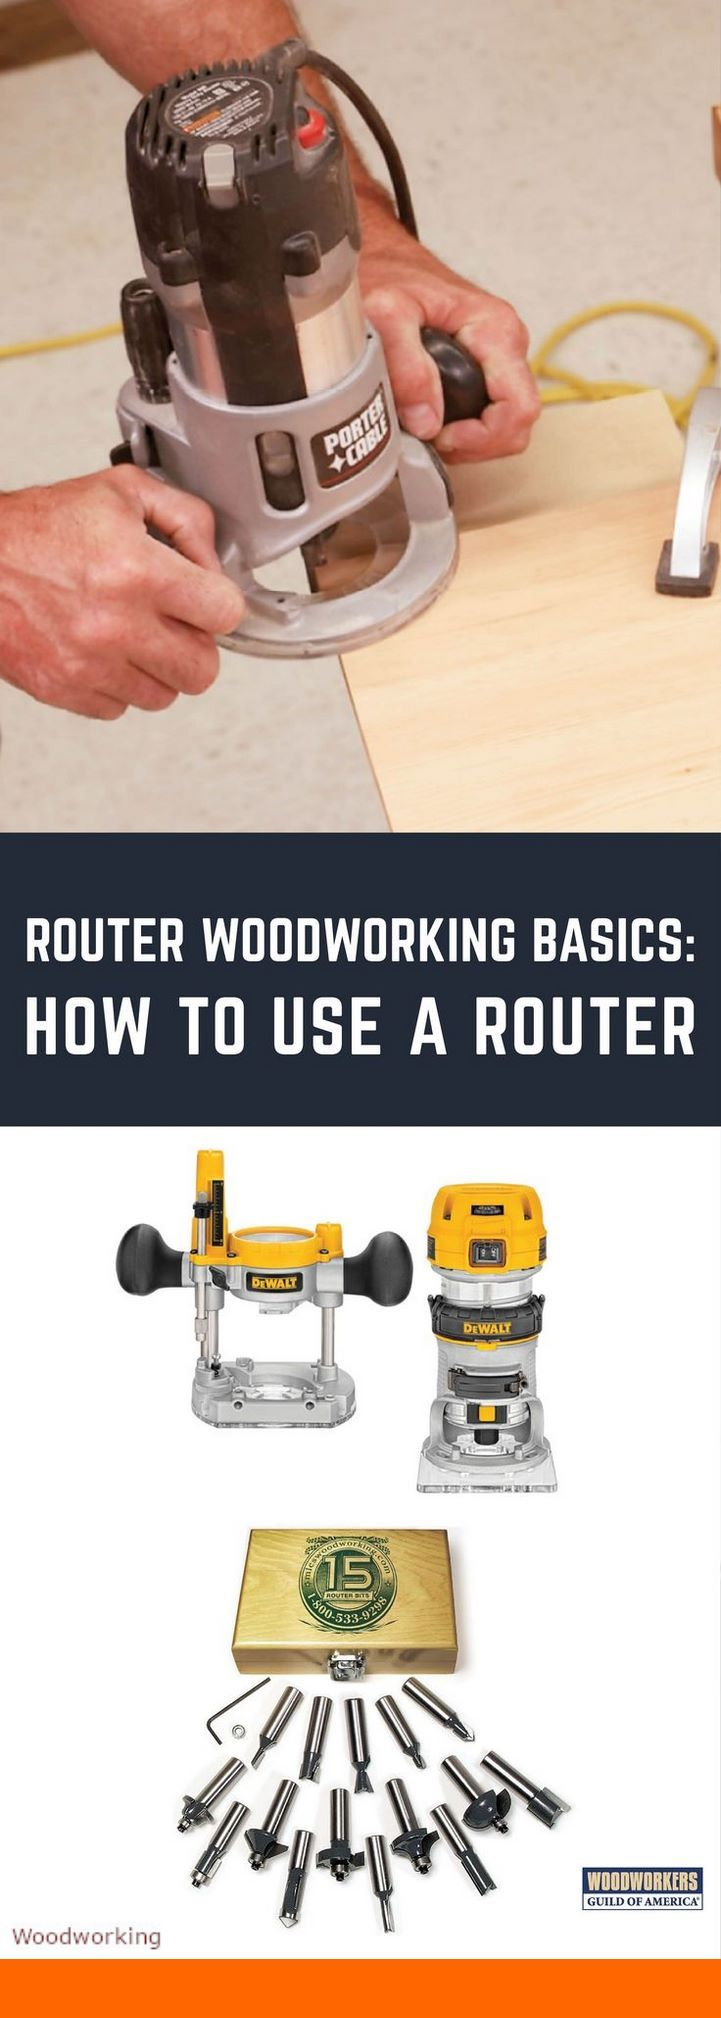 Easy Woodworking Projects For Home | Router woodworking ...